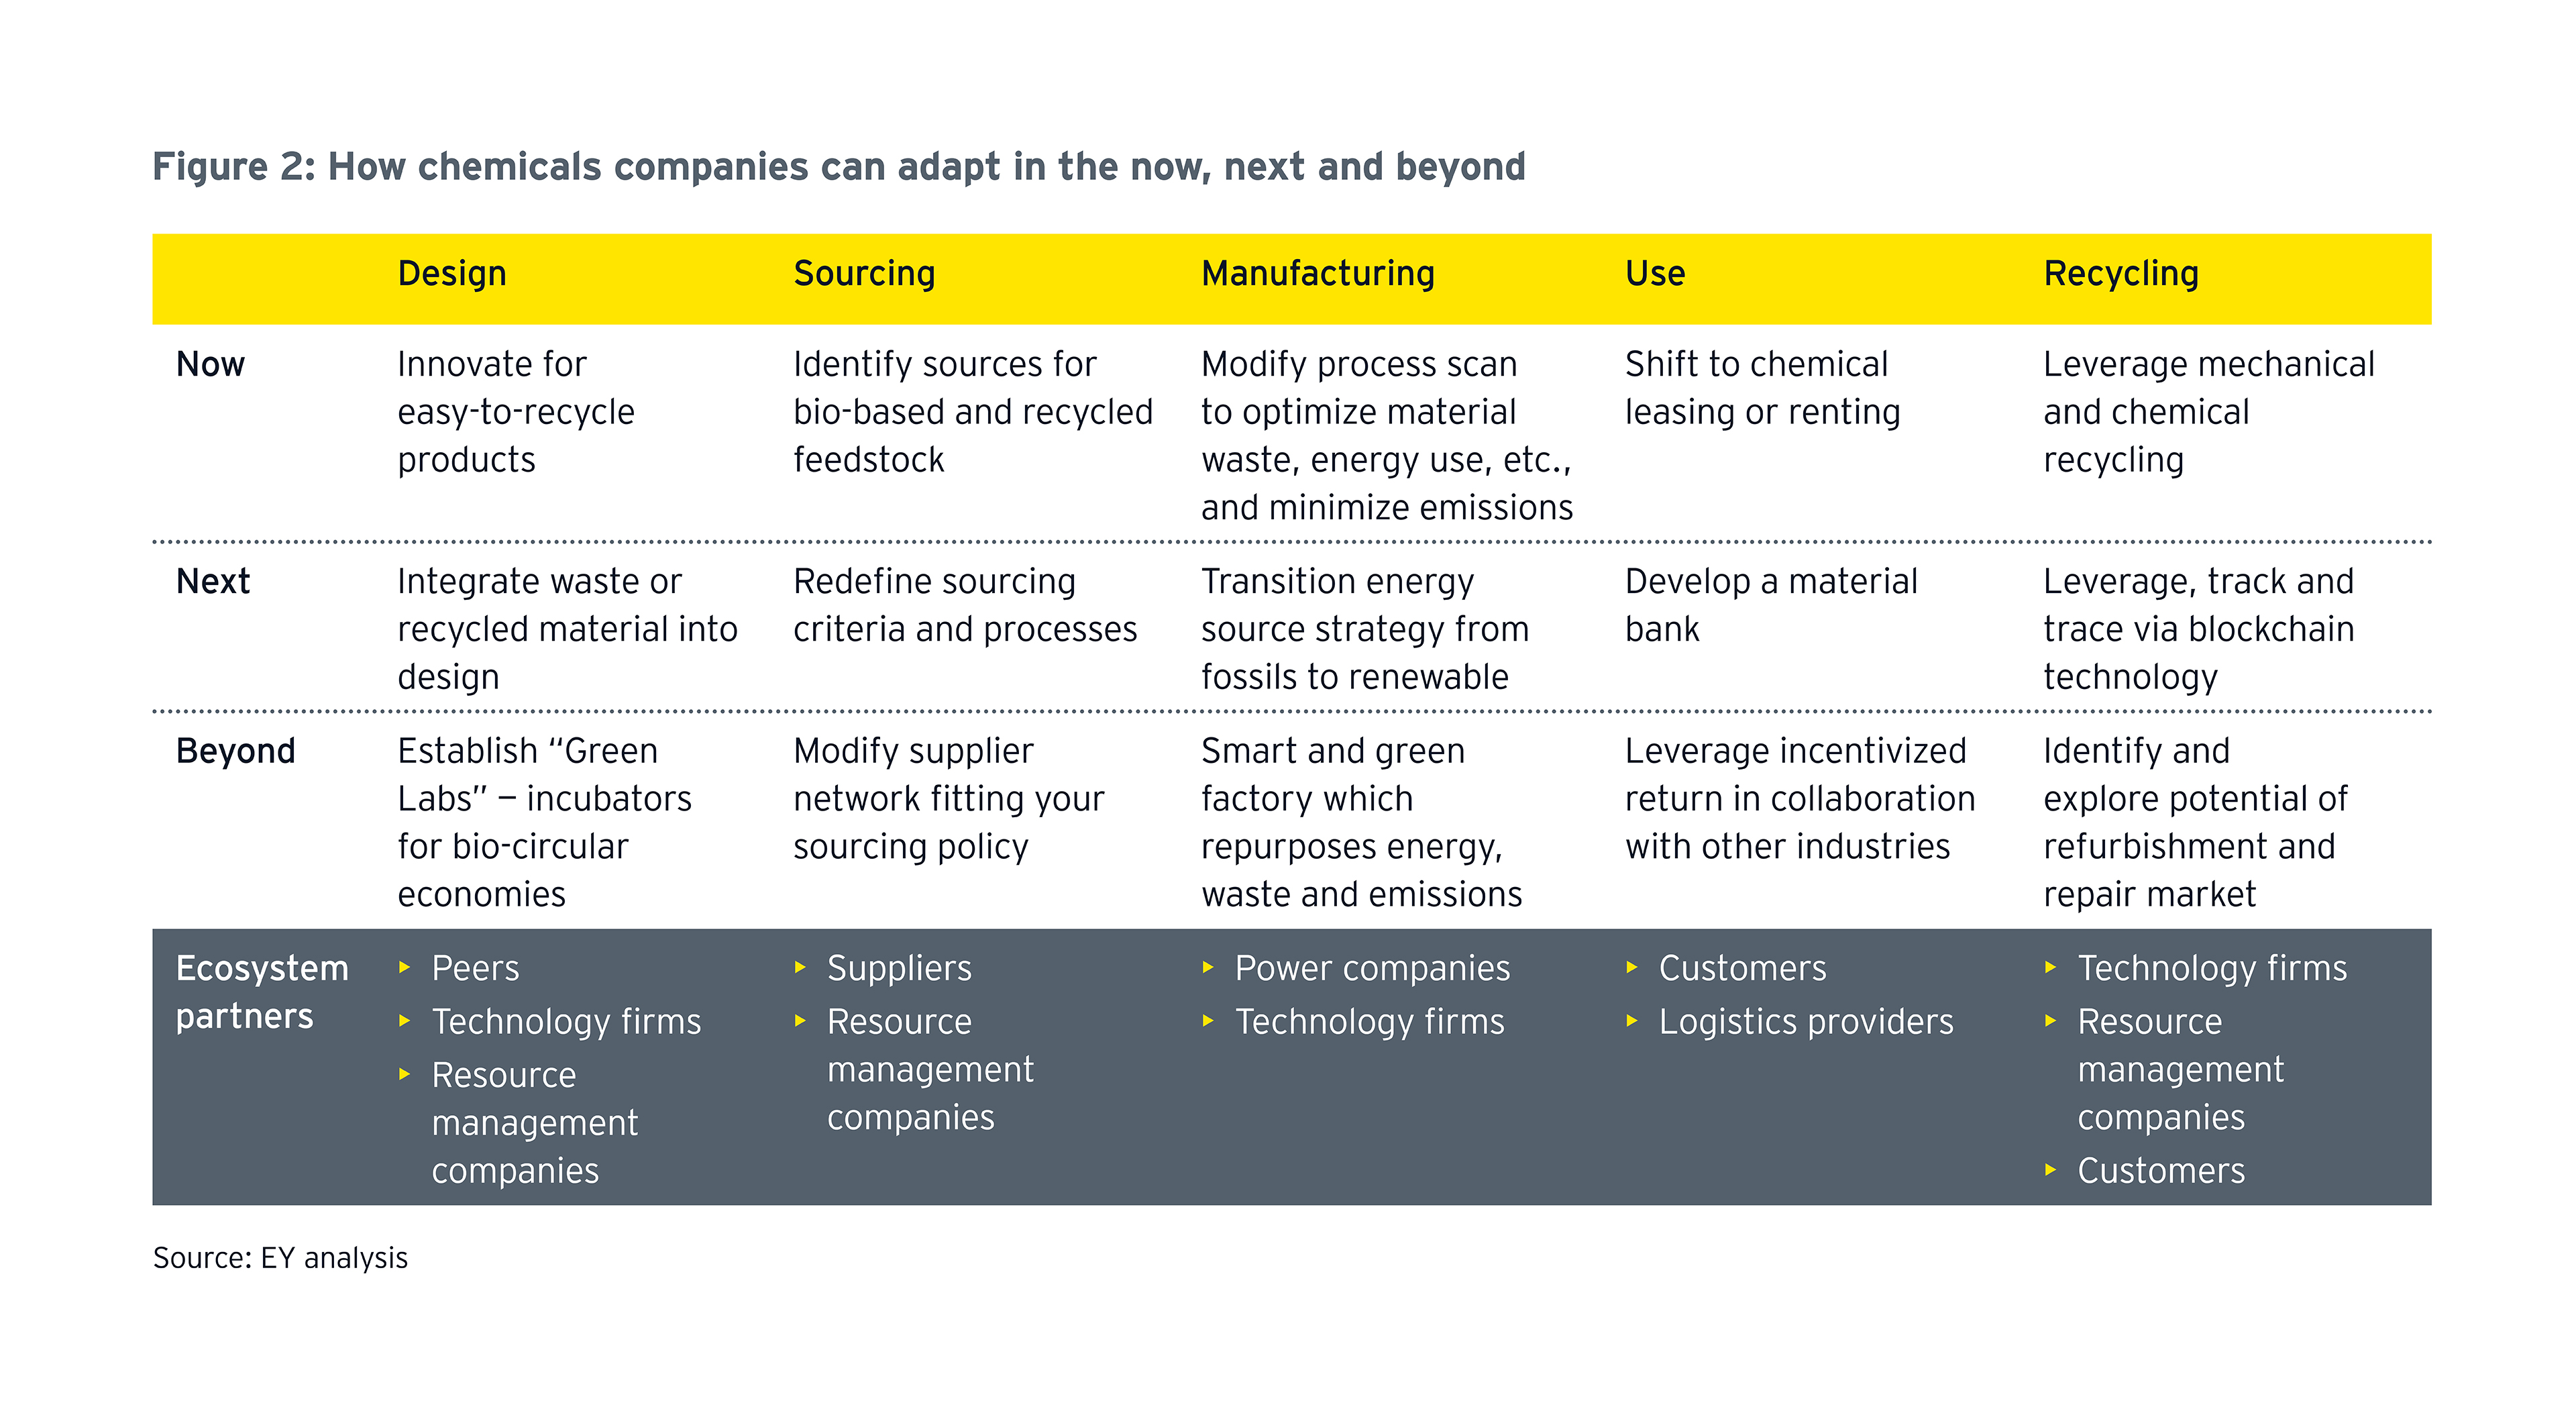 How chemicals companies can adapt in the now, next and beyond